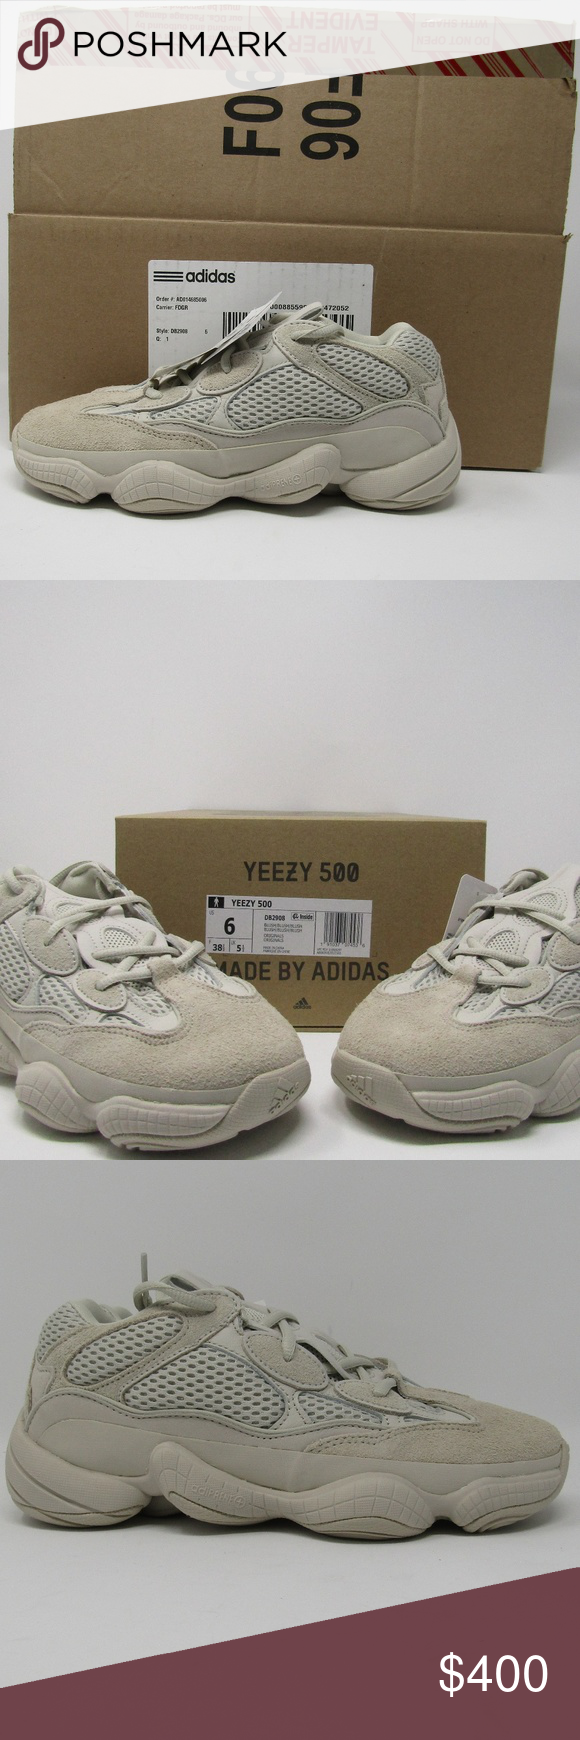 b5a2cf9124556 YEEZY 500 DESERT RAT BLUSH DB2908 SIZE 6 Authentic THIS SHOE IS BRAND NEW  IN BOX